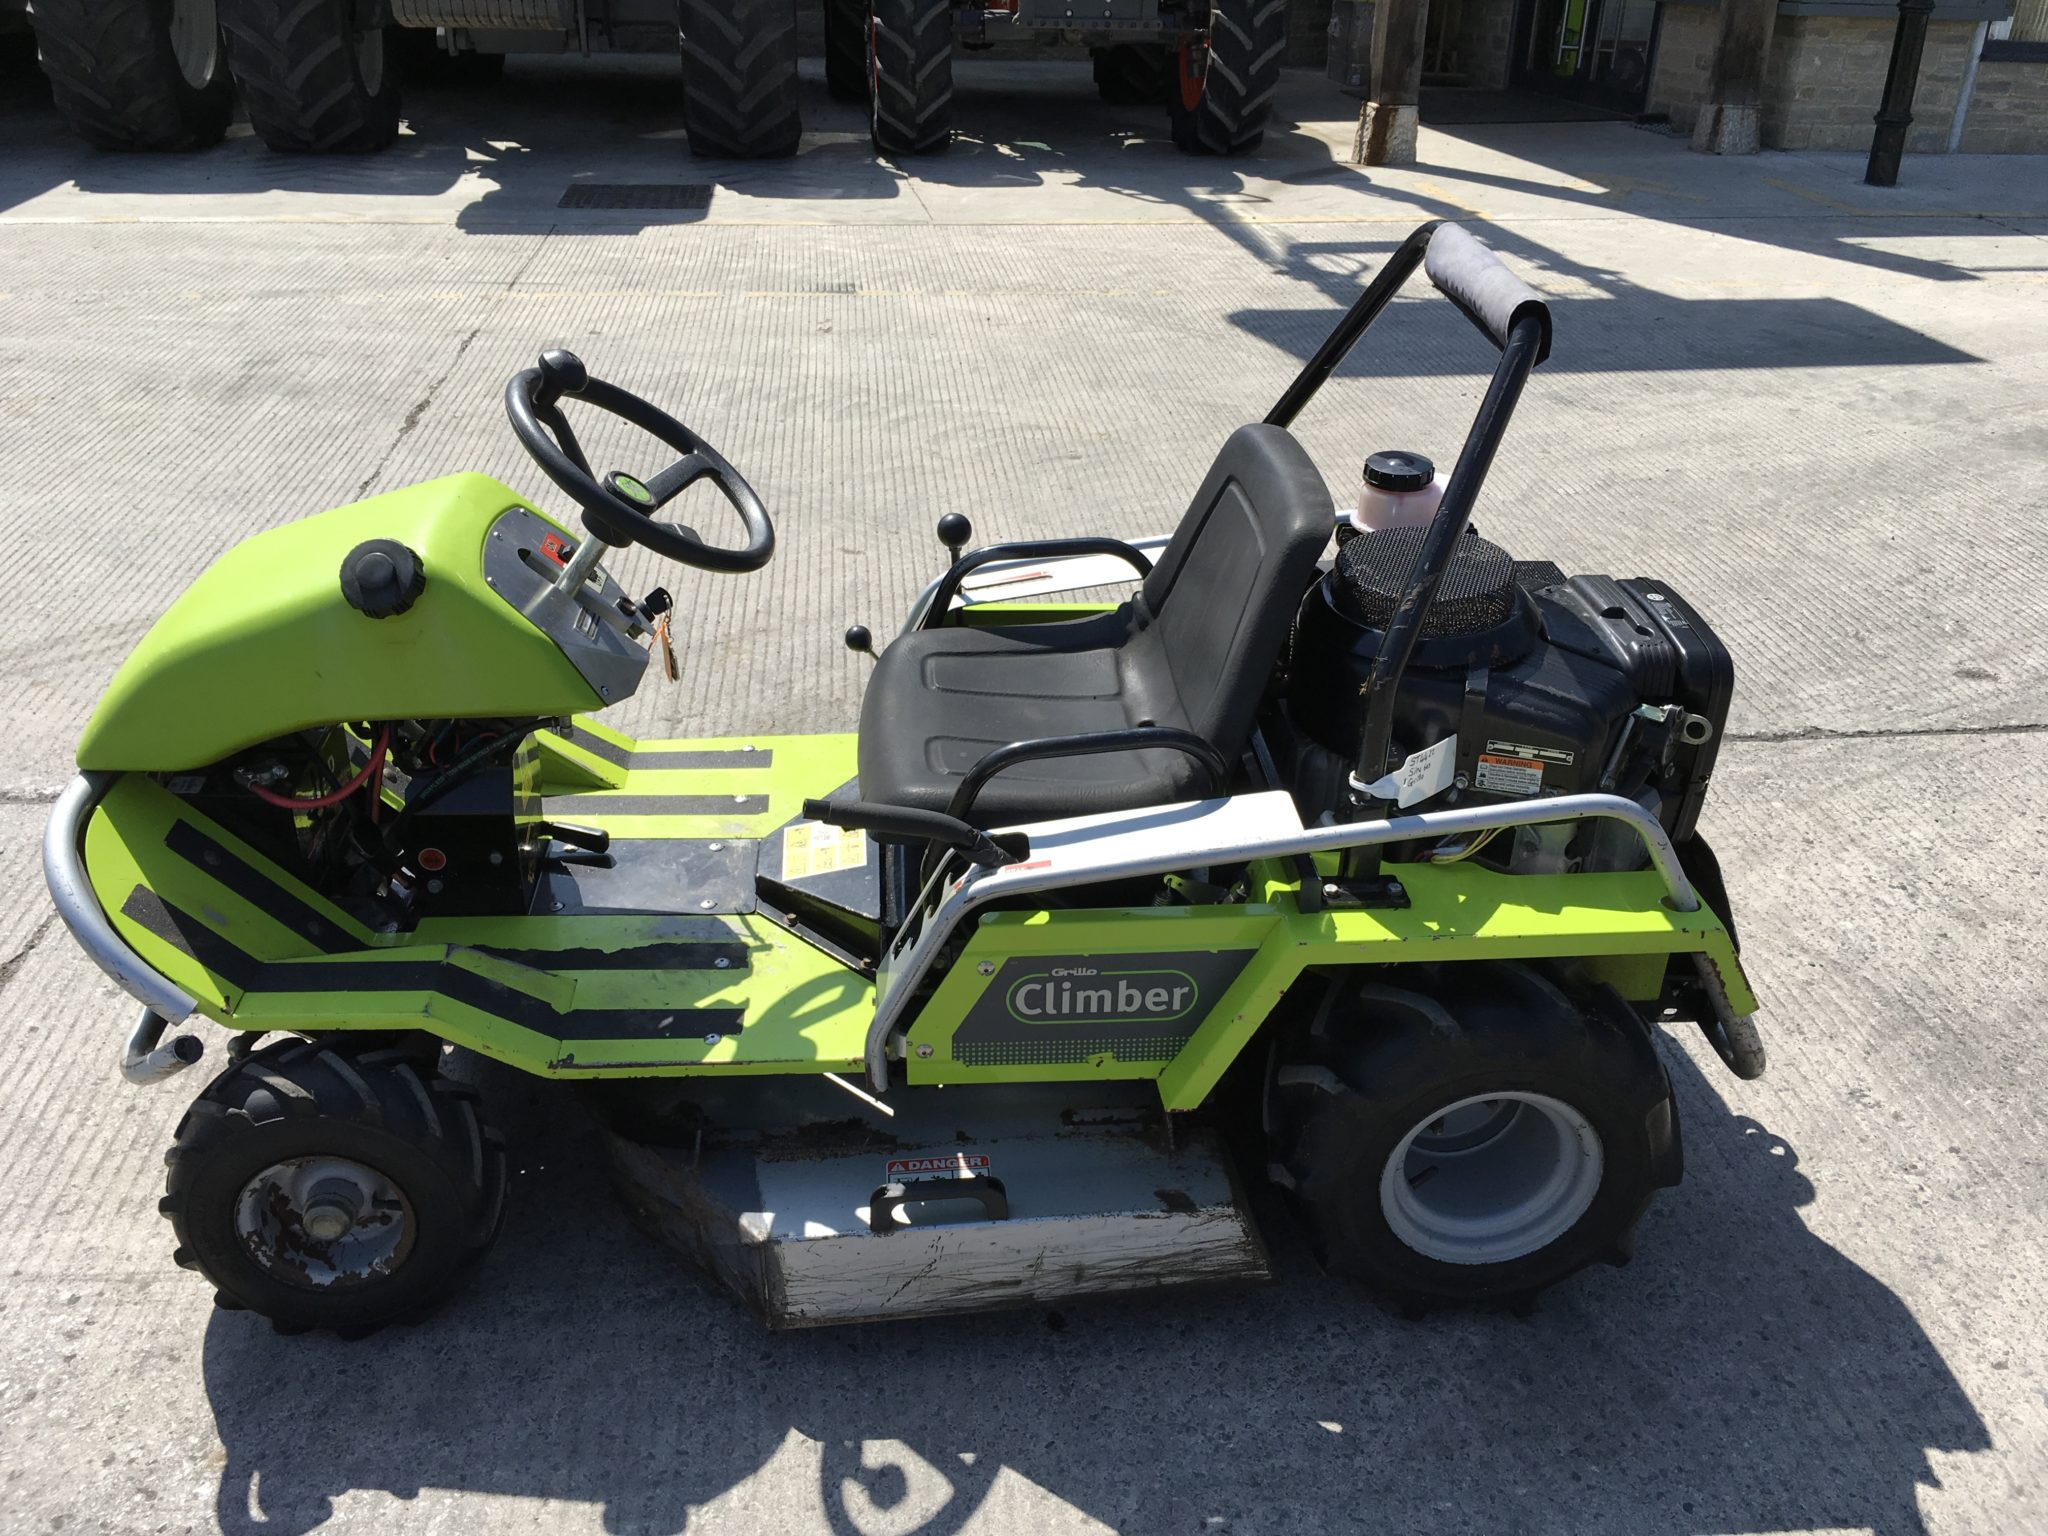 Grillo Climber 9 21 Bank Mower (ST4422)